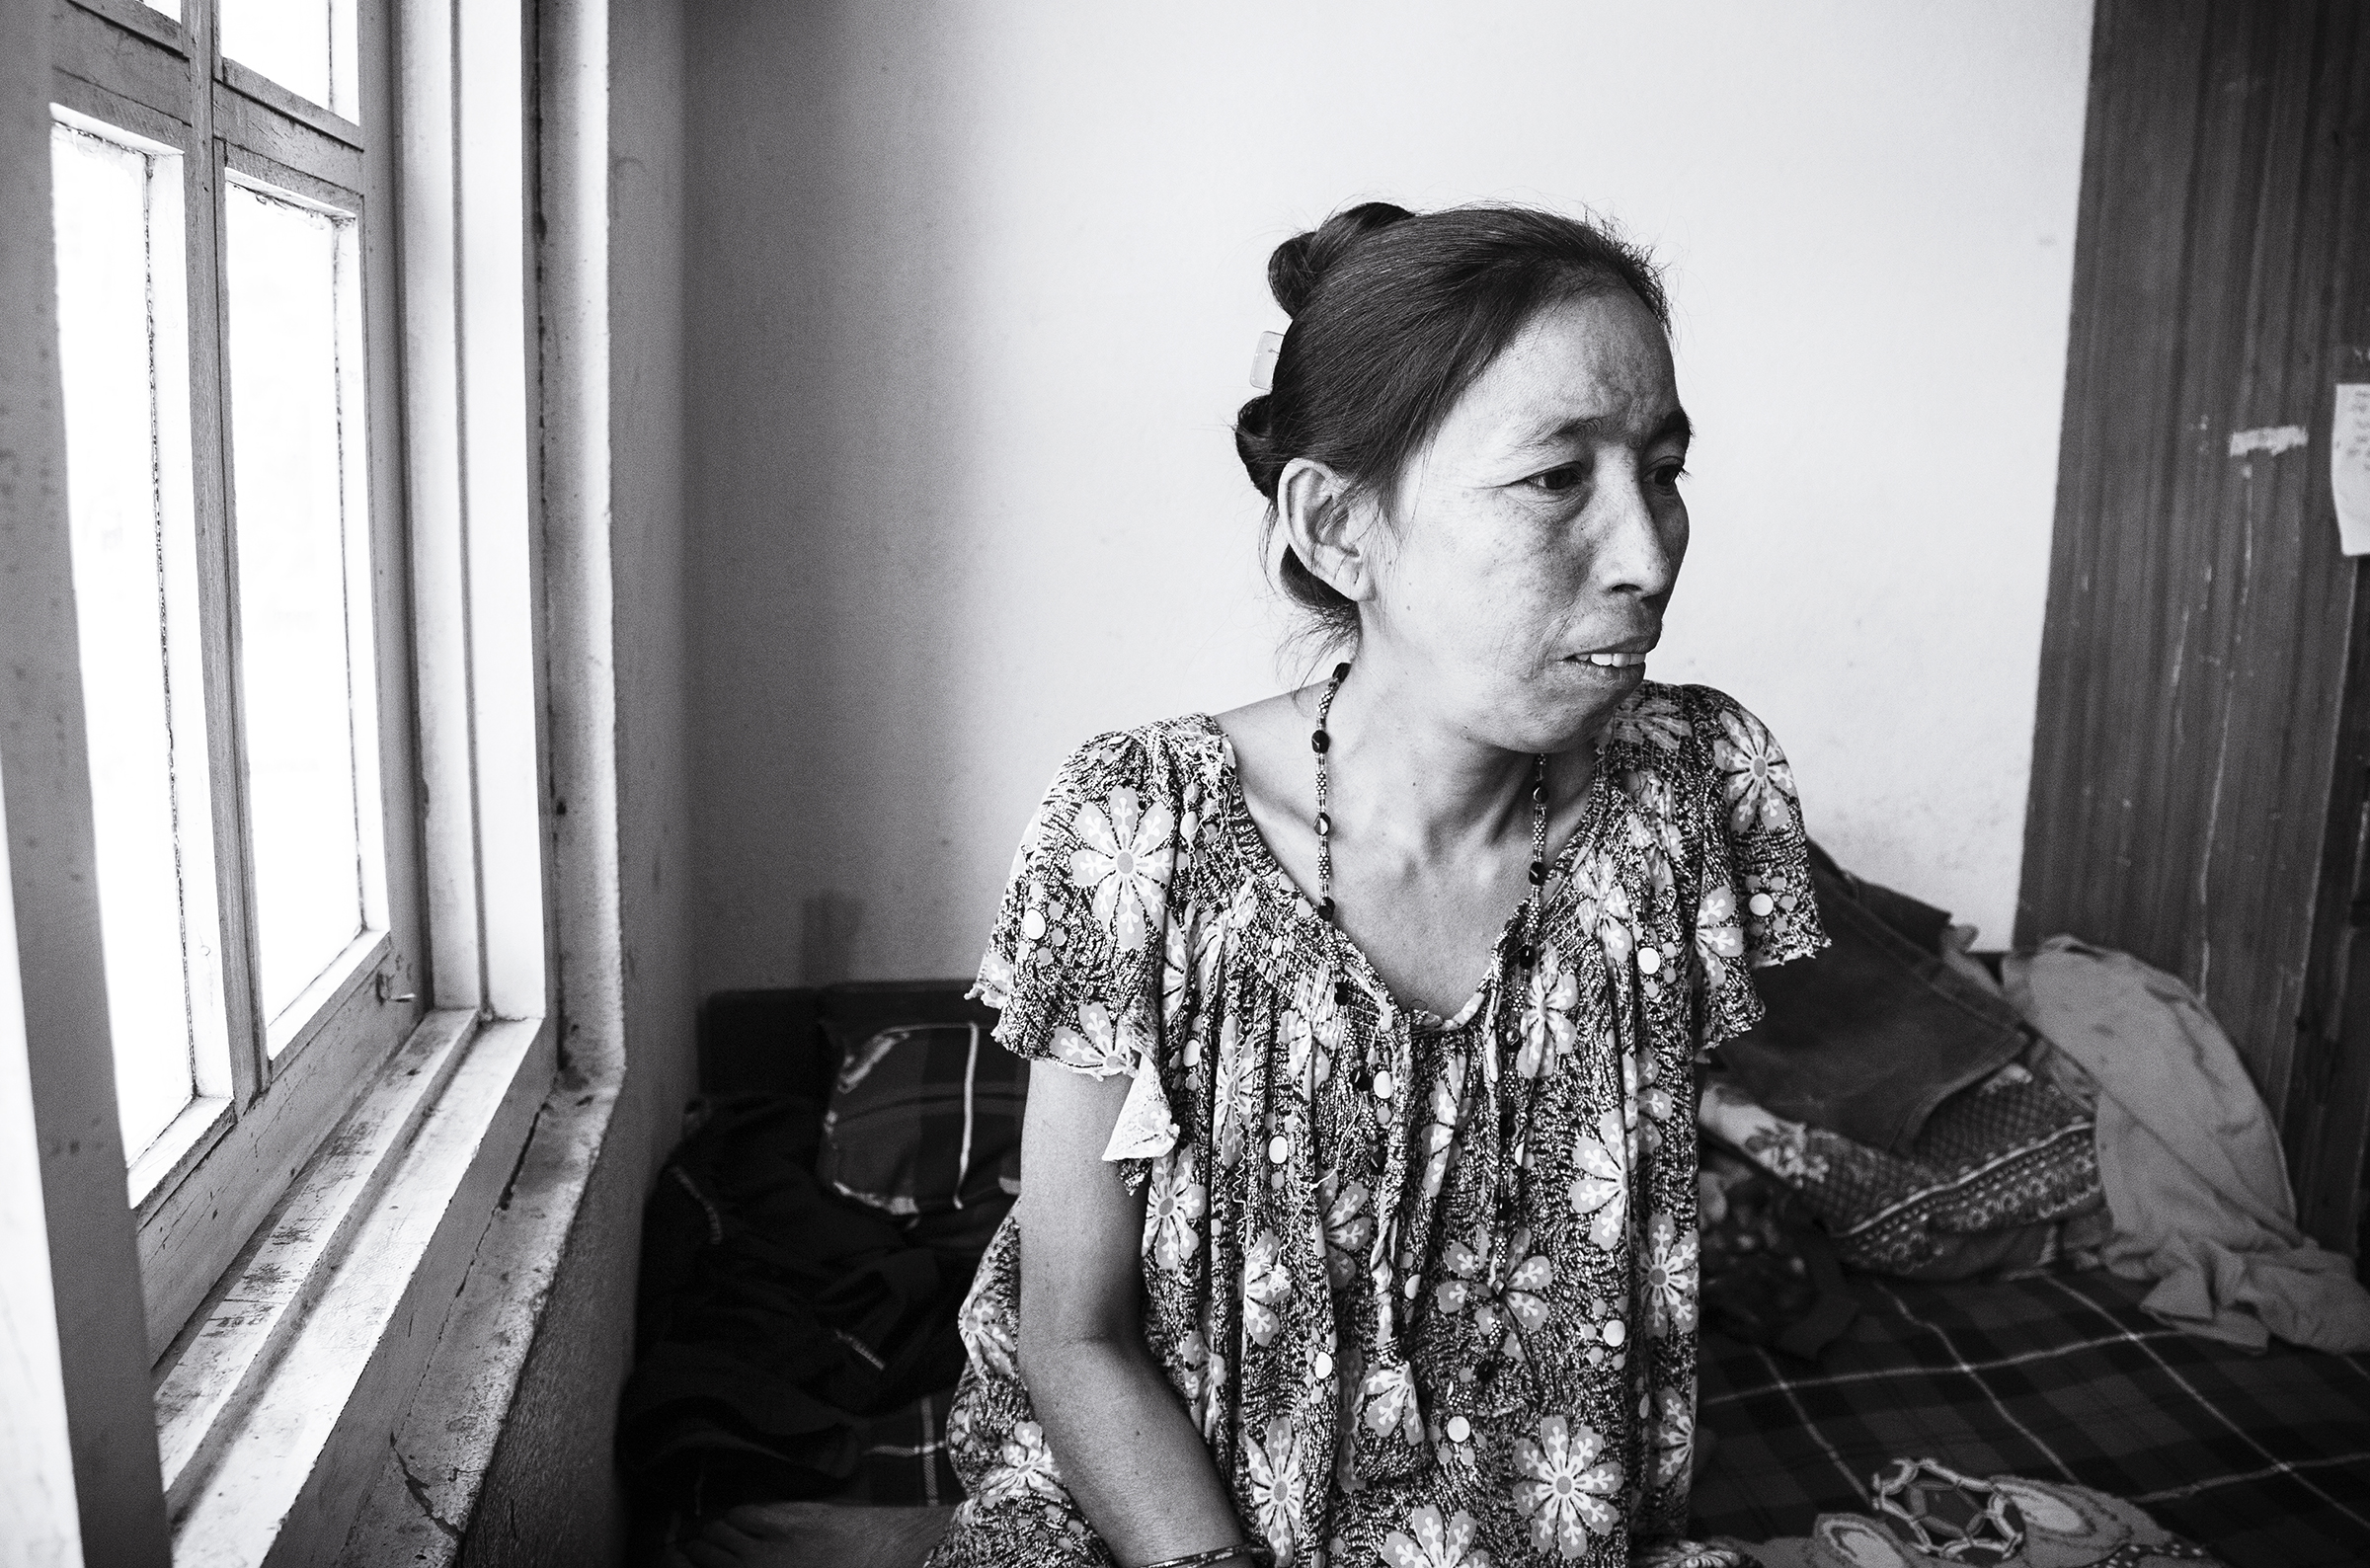 Phoolmaya spends much of her time inside of the family's room. Her level of activity is limited, as her knee, which she did not receive medical treatment for, continues to heal after being crushed in the earthquake.